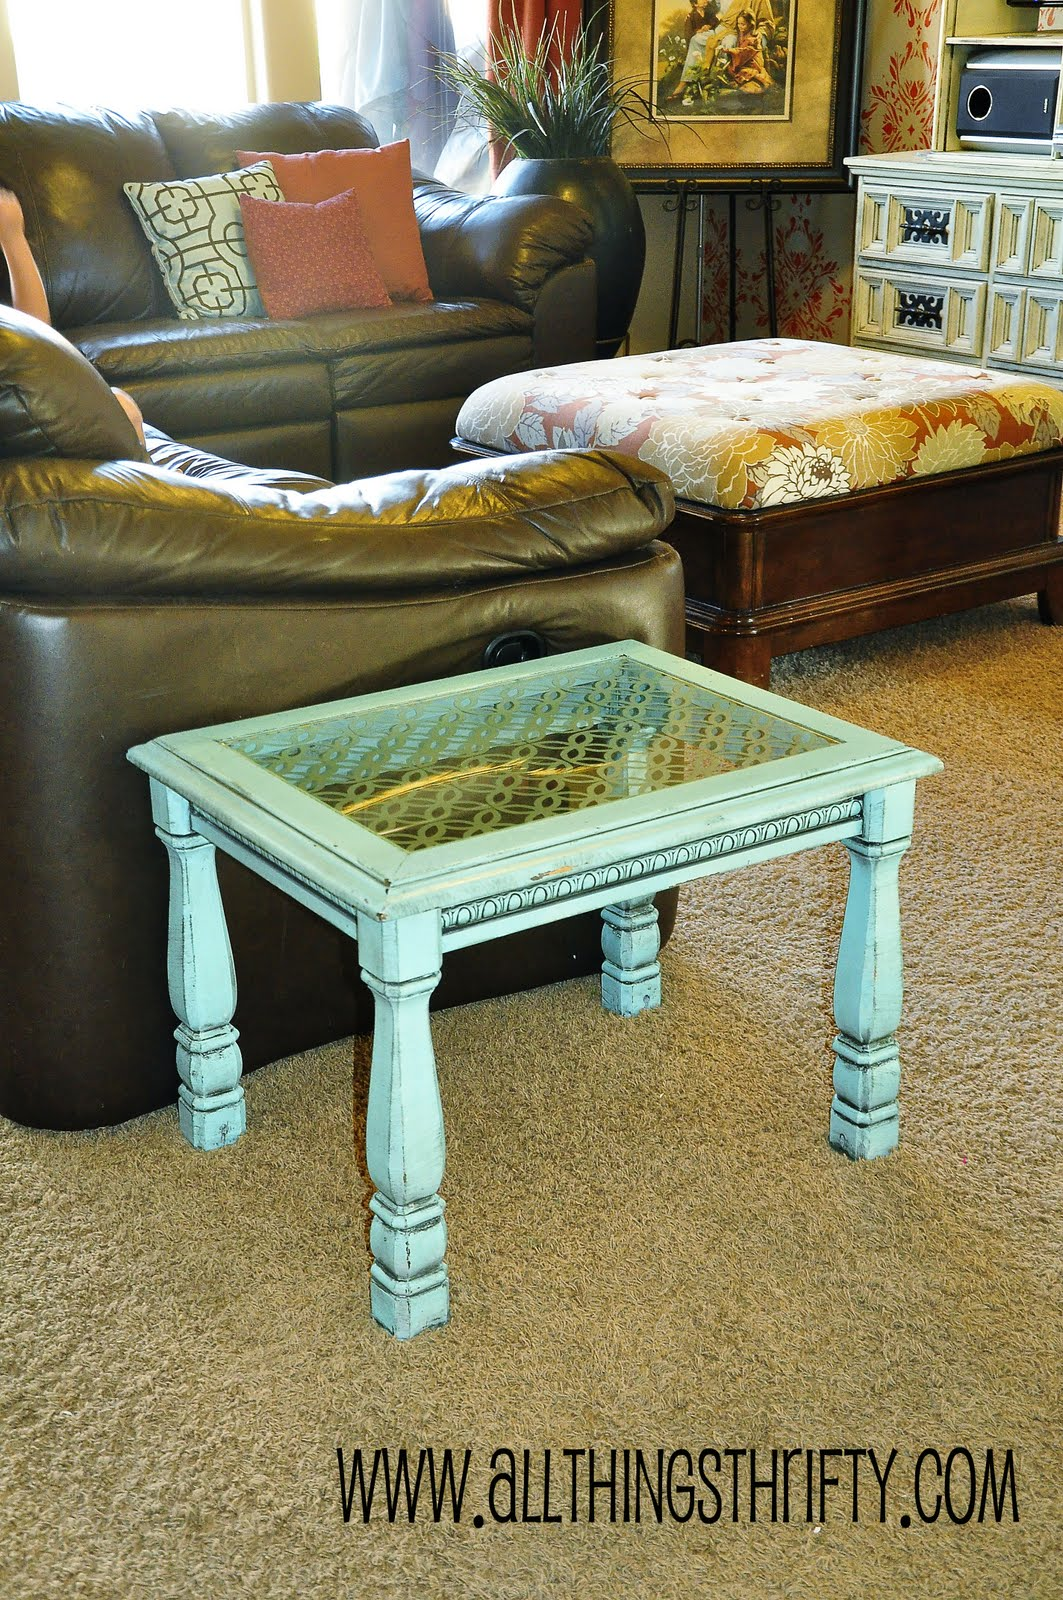 Add Character To Glass Furniture The Easy Way All Things Thrifty